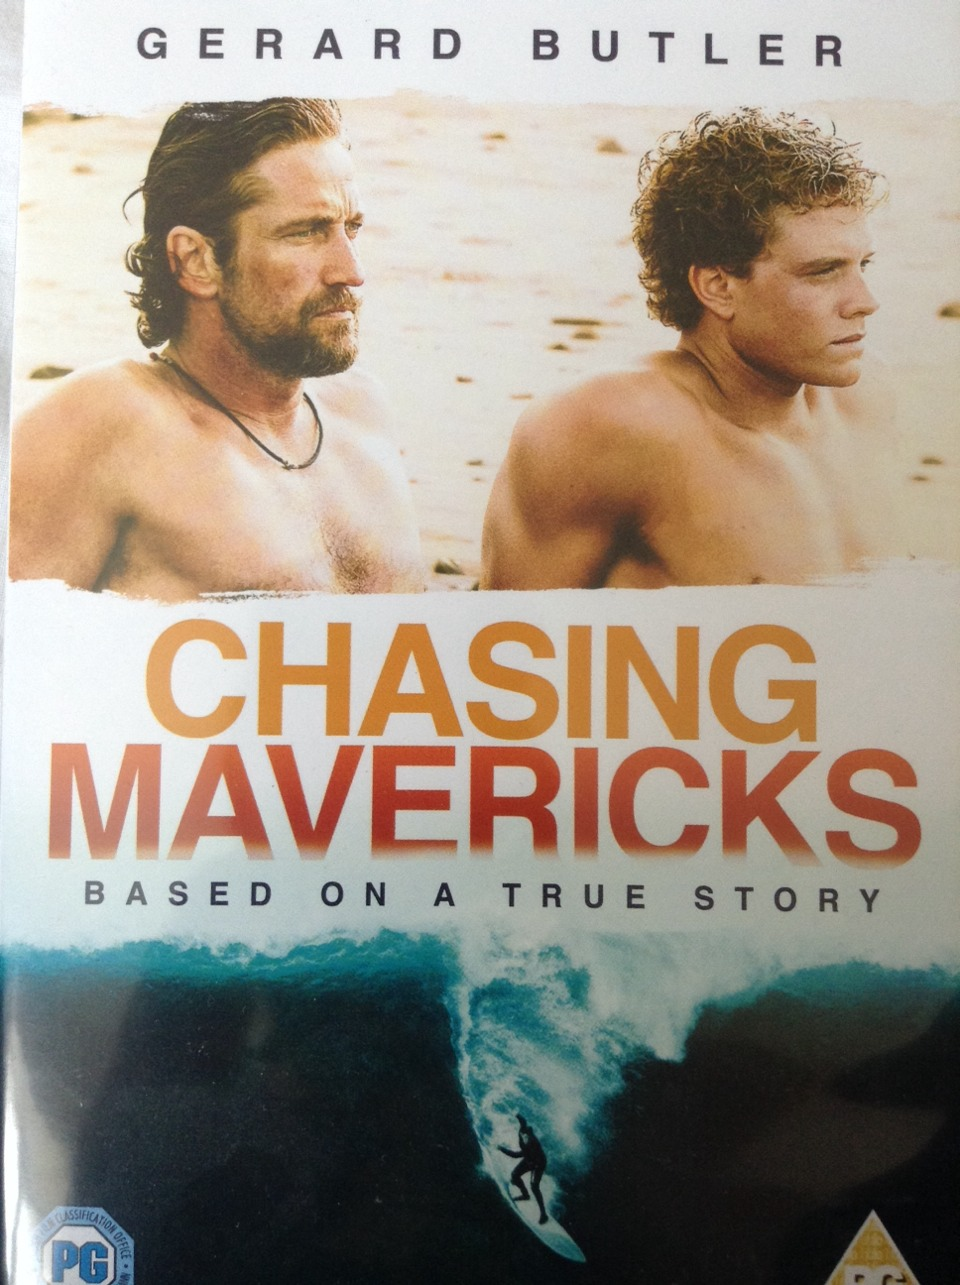 This is such an amazing film cried every time, truly inspirational based on a true story, and Gerard butler😘